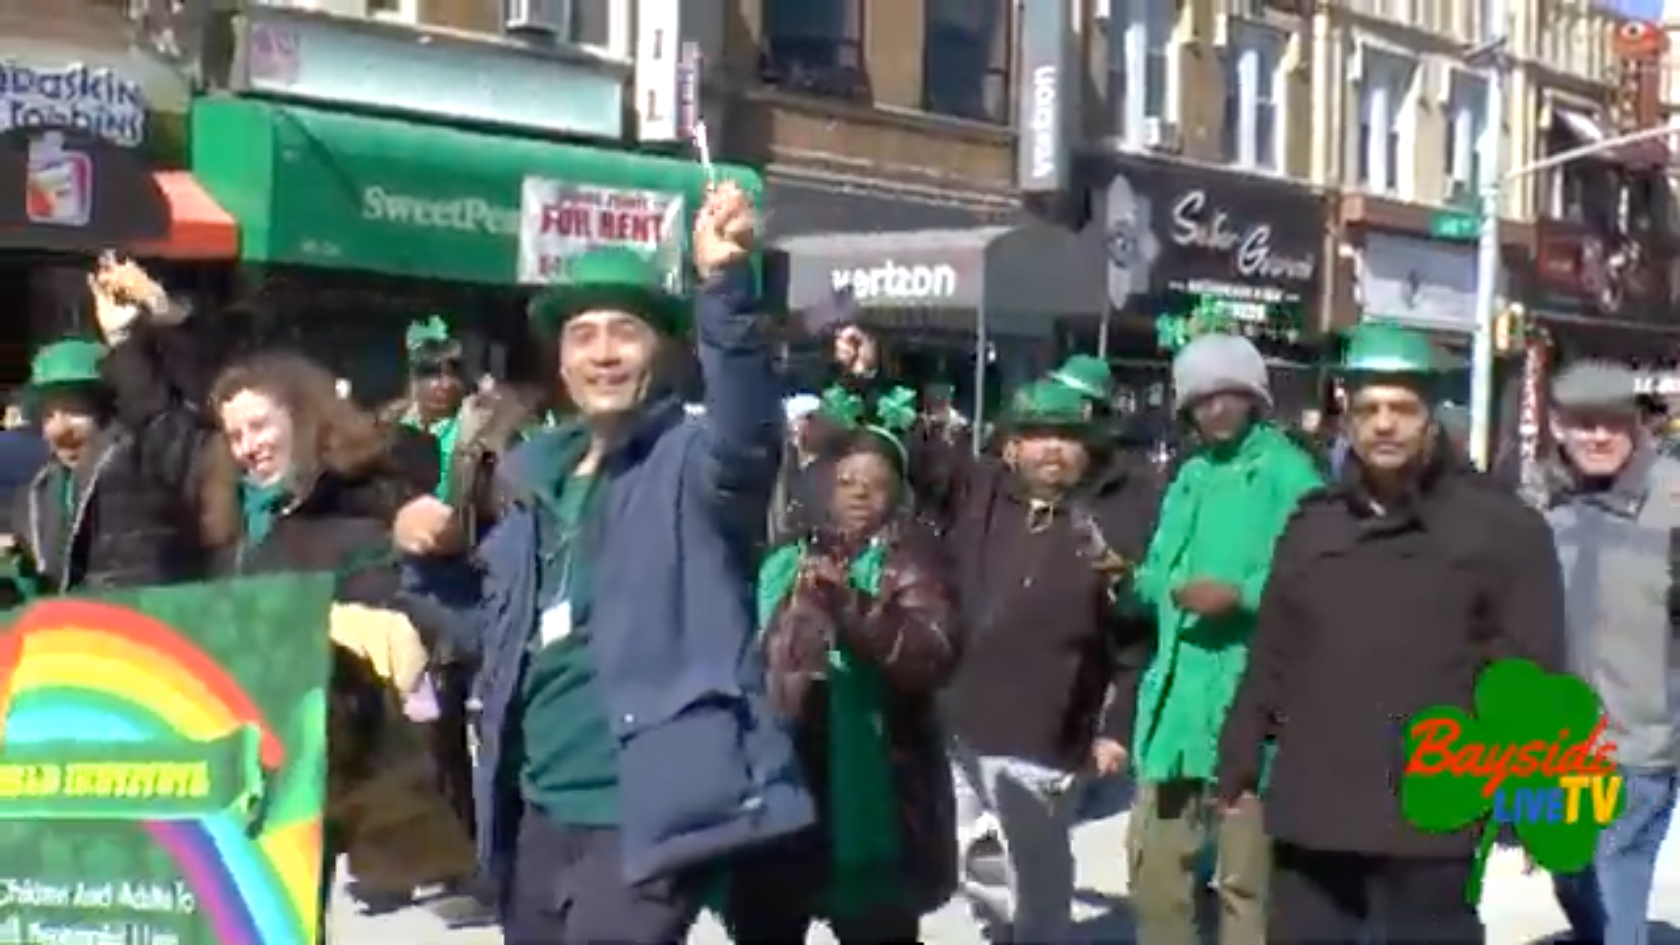 Saint Patrick's Day Parade 2018